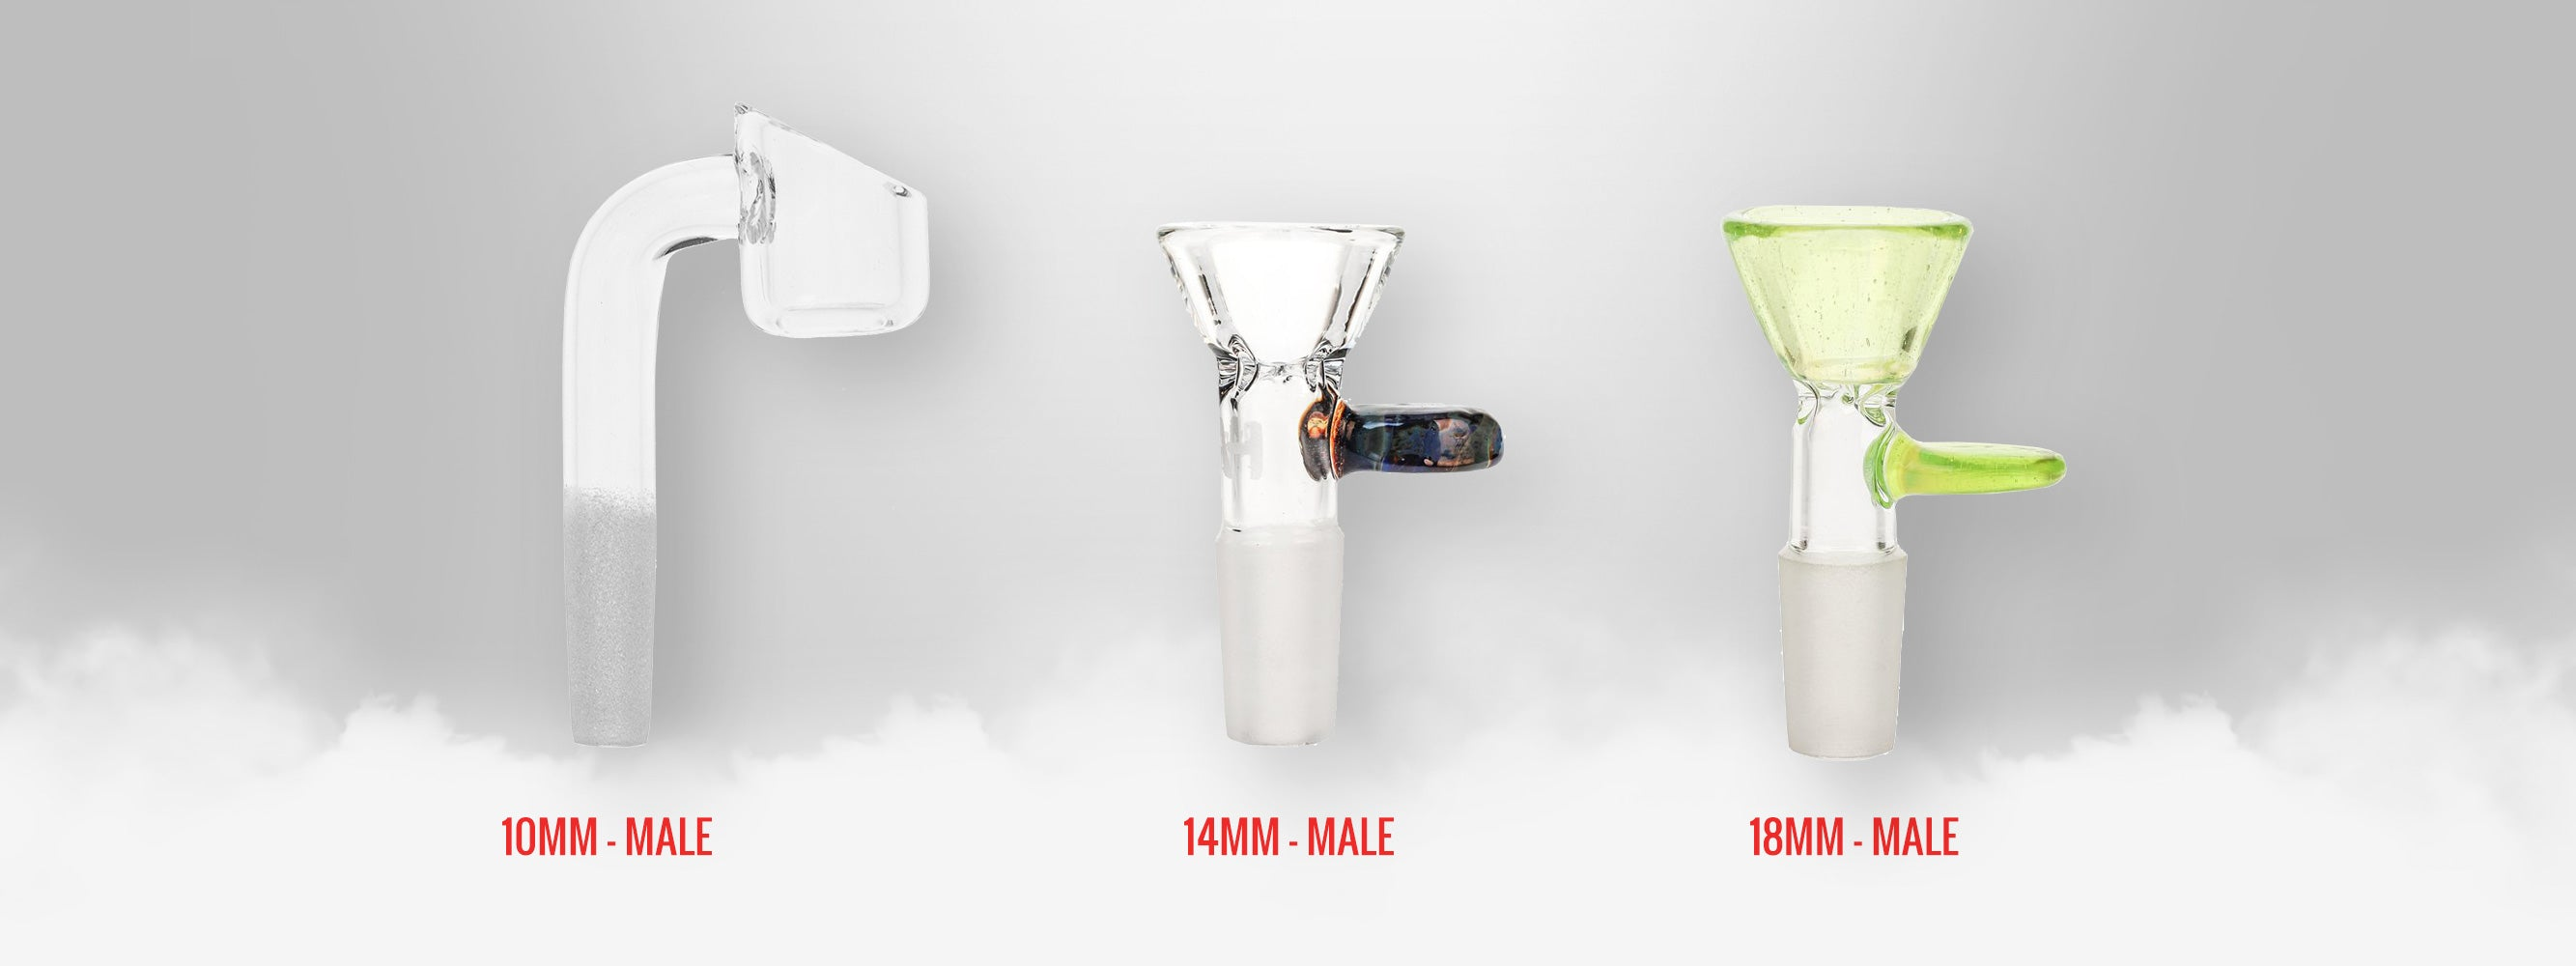 Standard Joint Sizes for Water Pipes and Dab Rigs